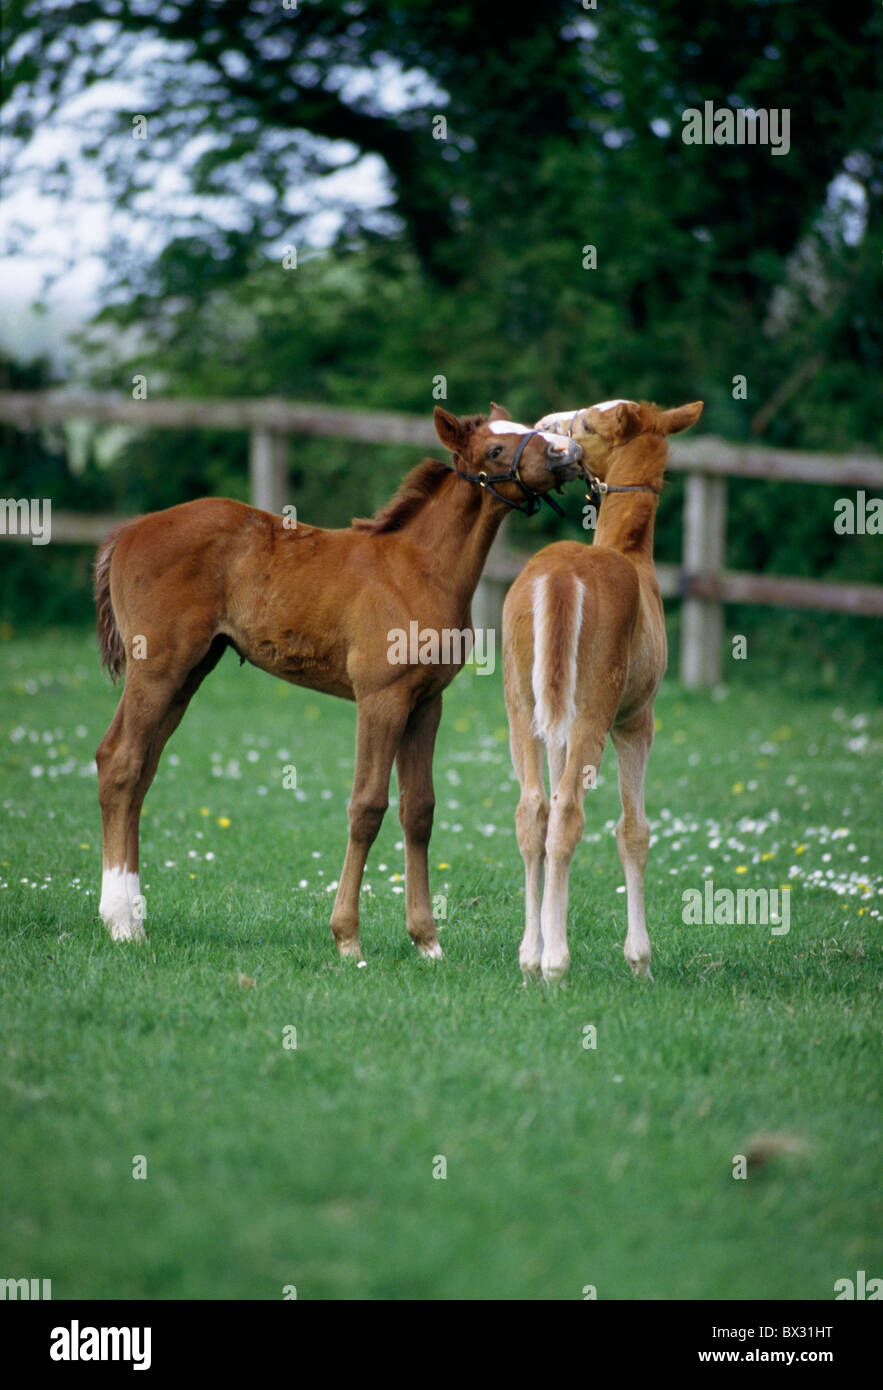 Horses - Thoroughbreds, Foals, - Stock Image